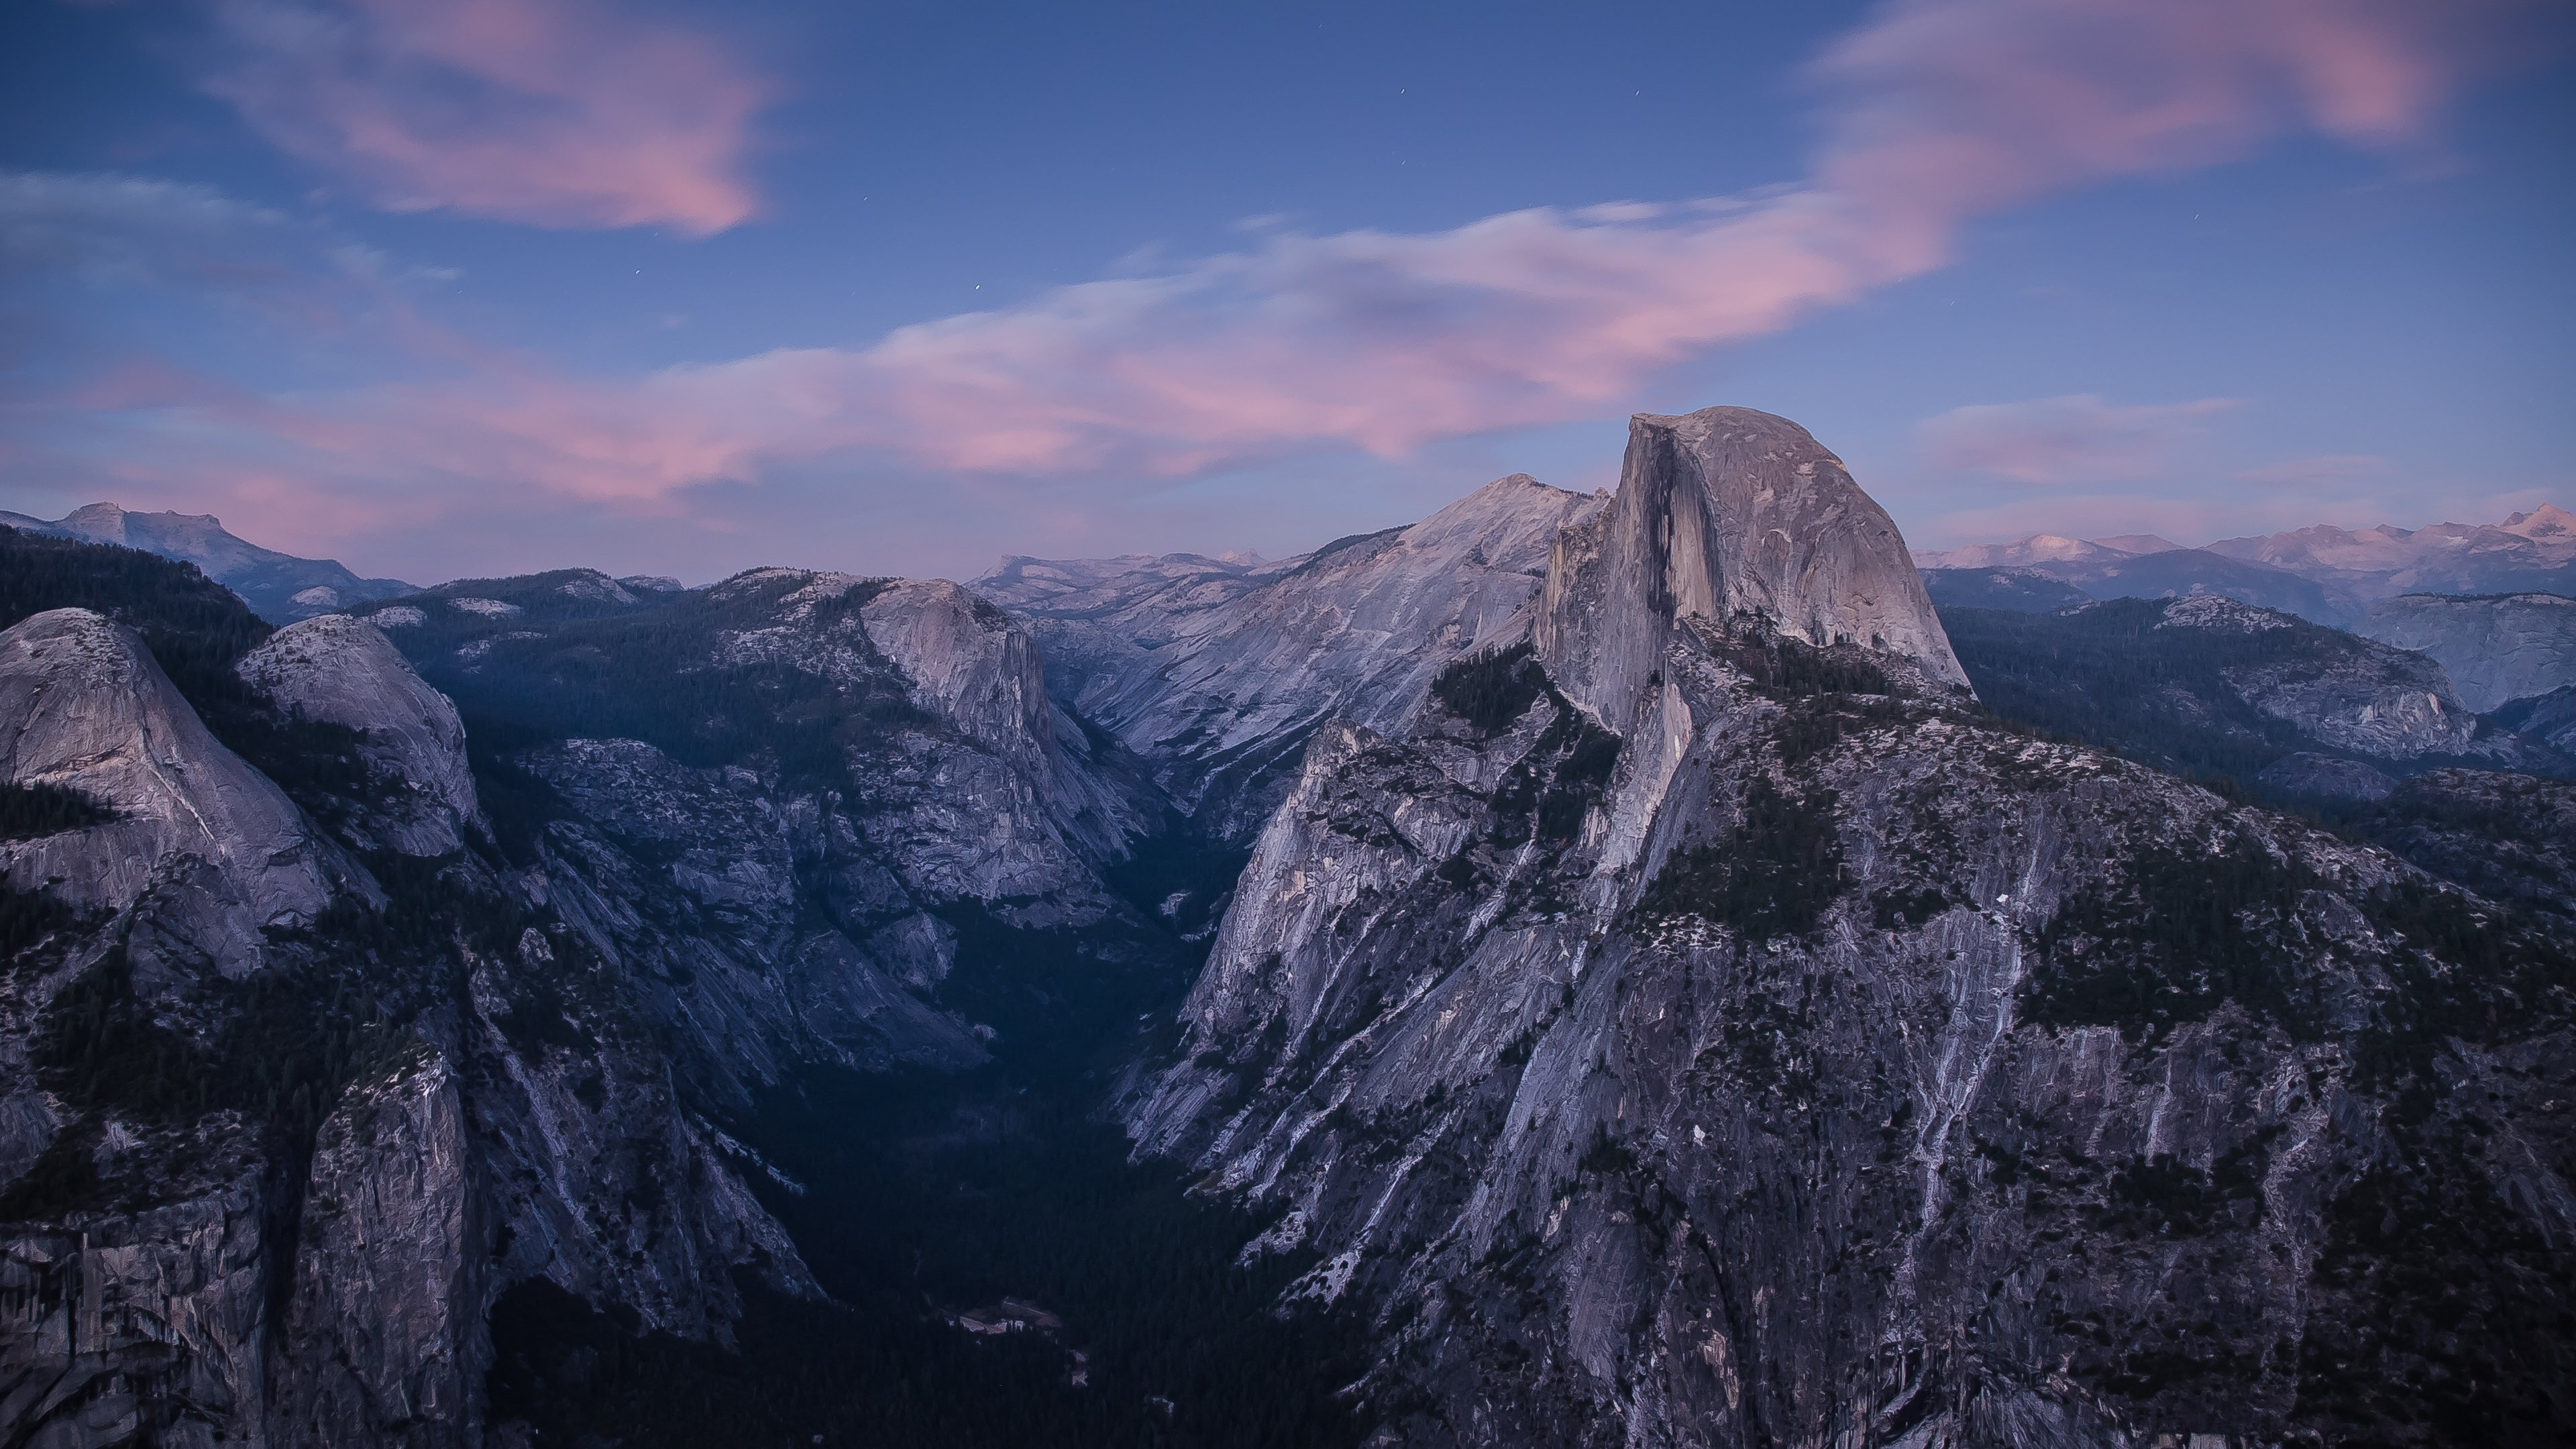 3840x2160px 4k Yosemite Wallpaper 2160 Wallpapersafari